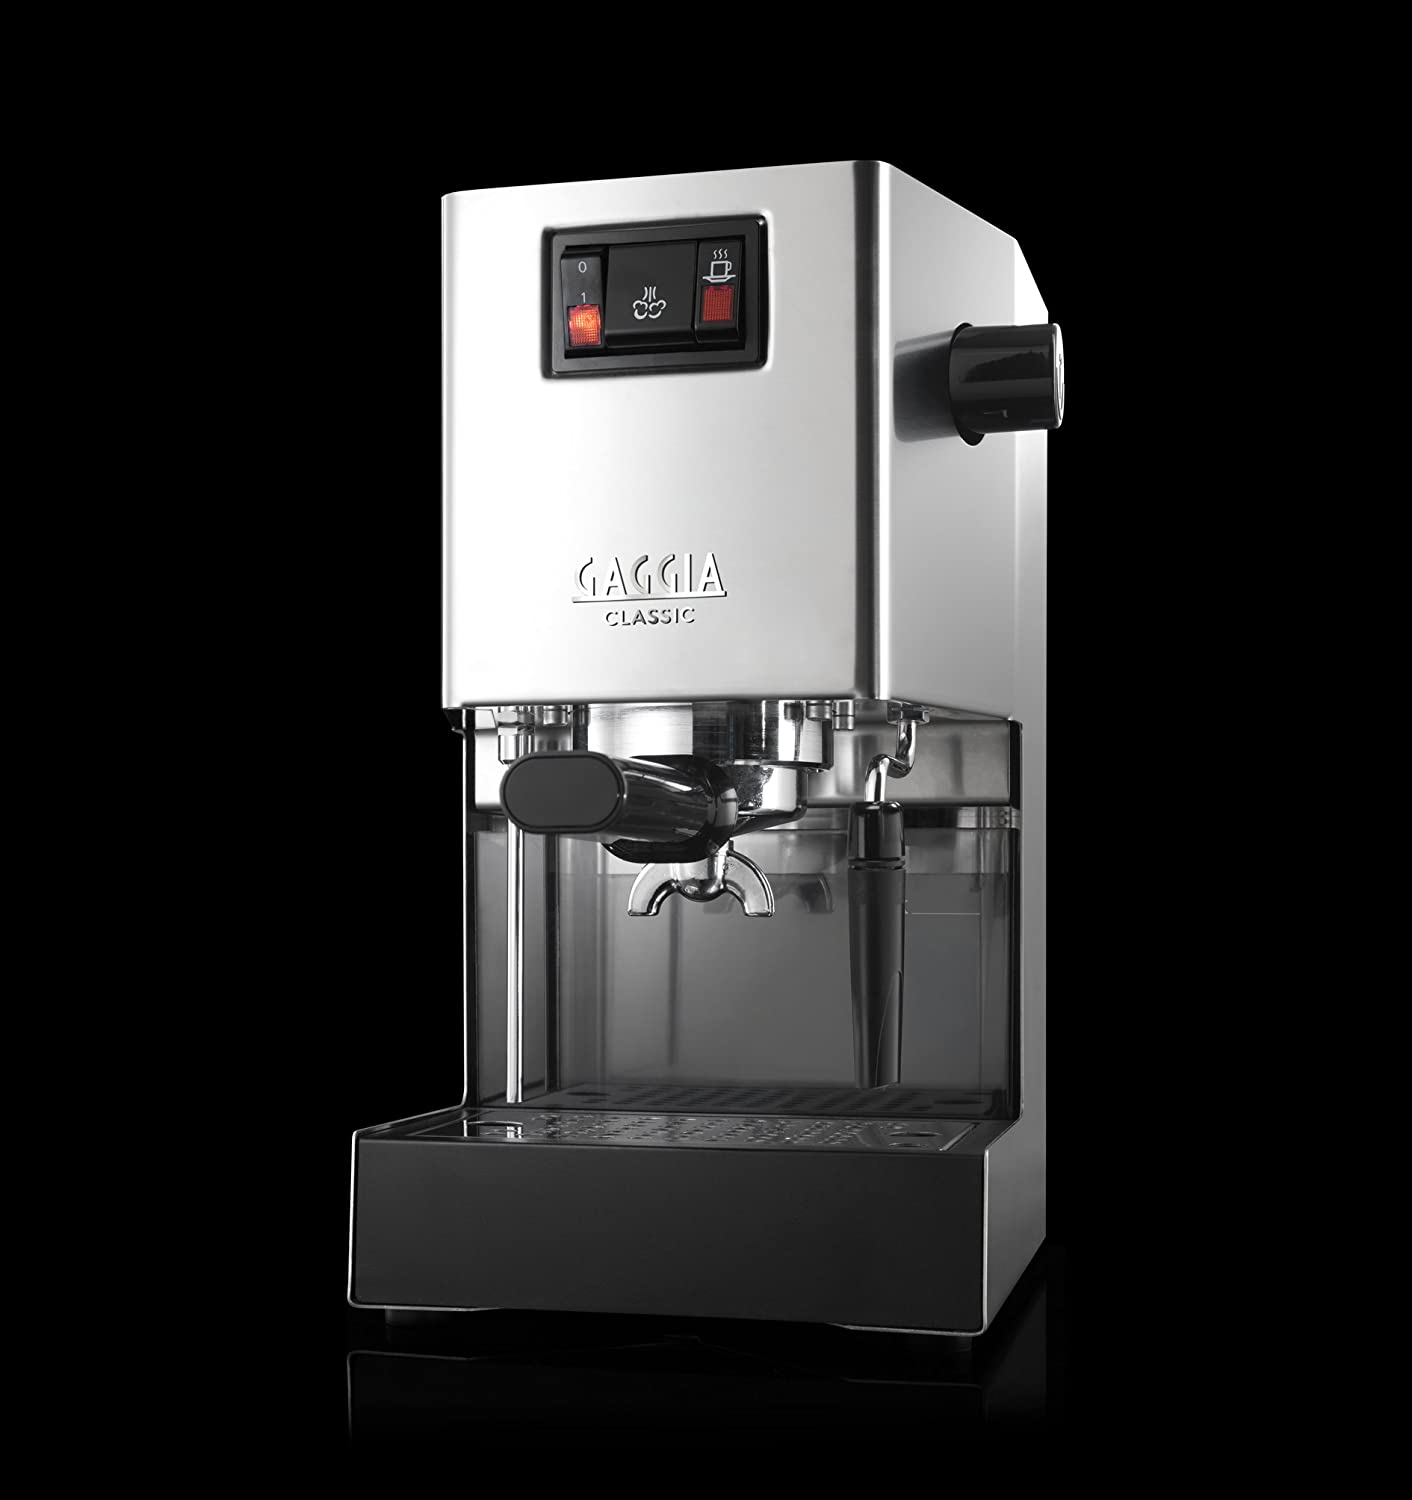 Gaggia Classic, Brushed steel, 1300/1425 W, 230-240V 50Hz / 120V ...